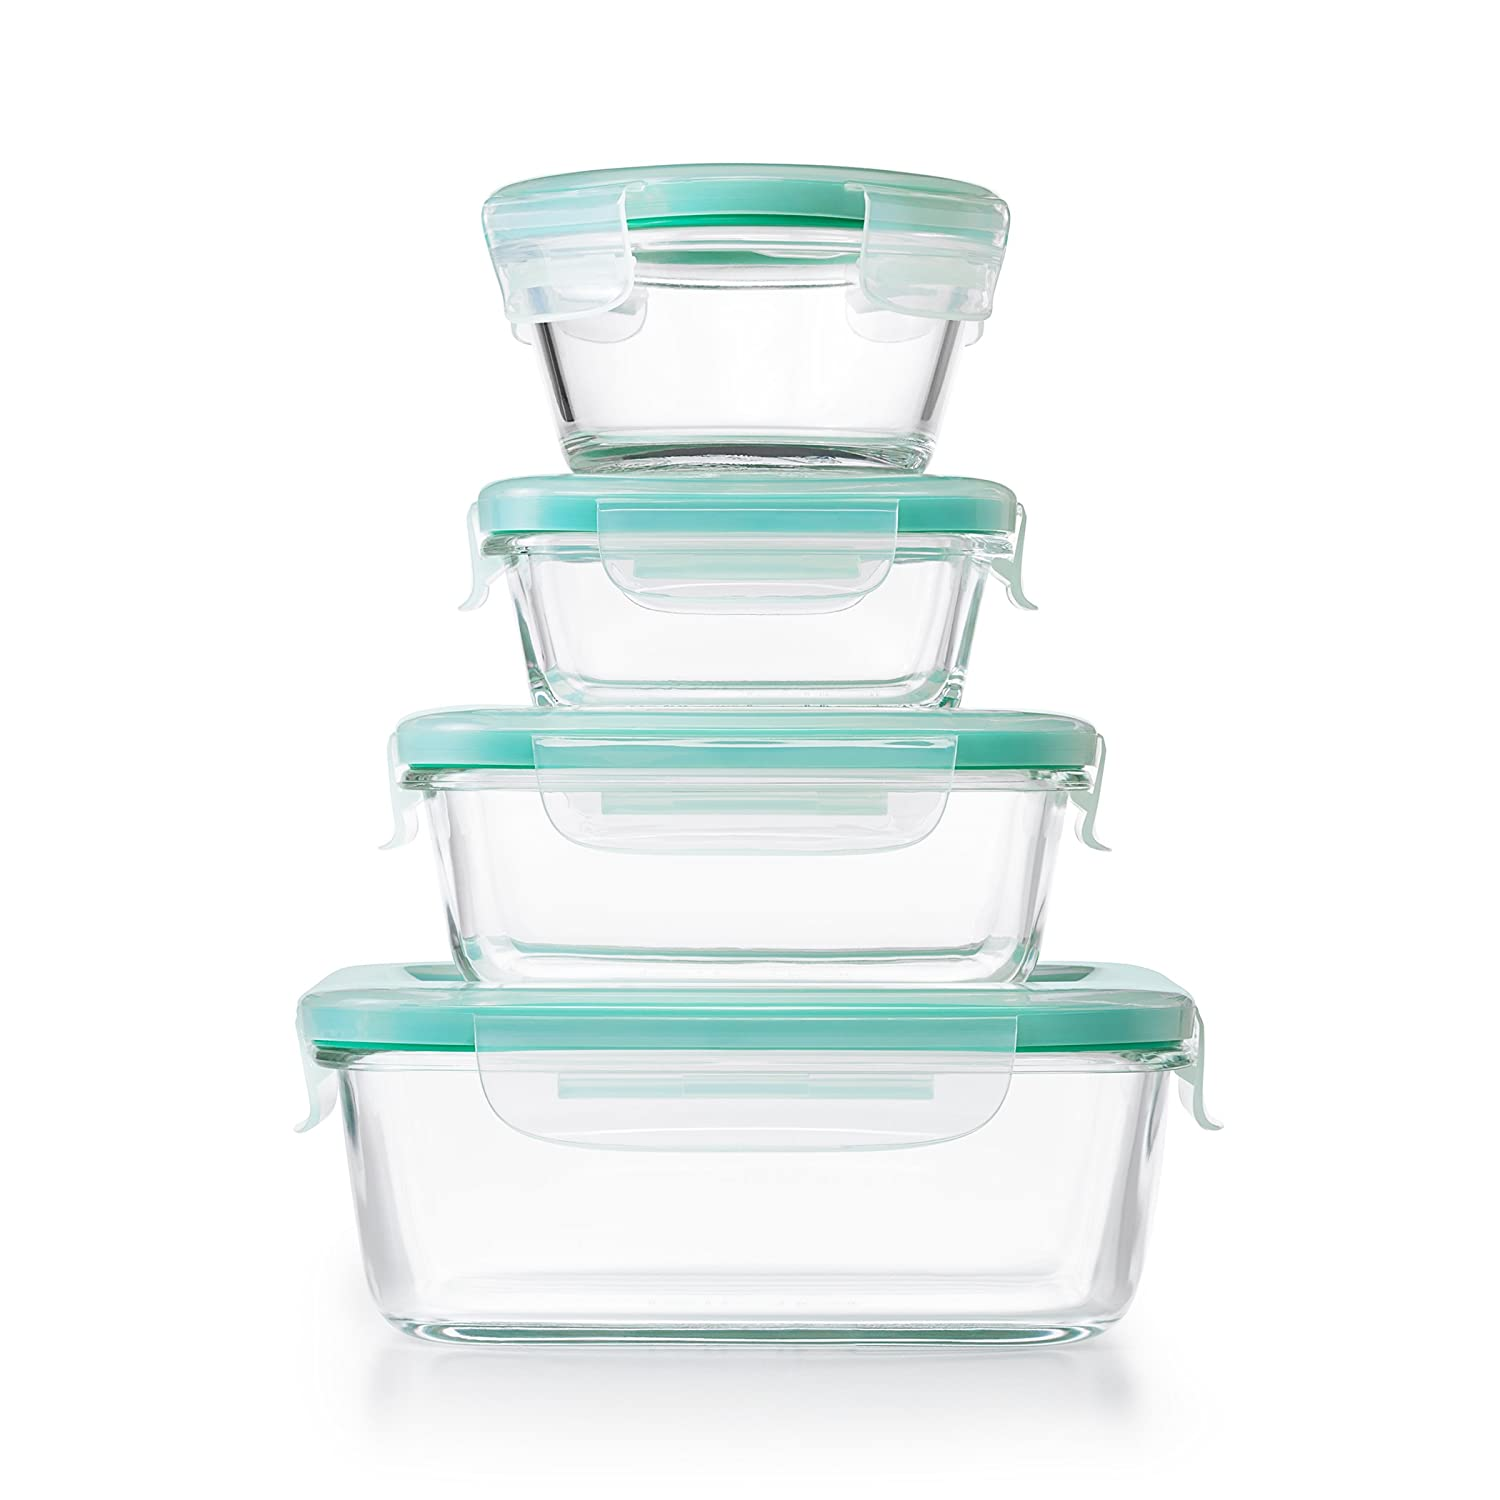 a5cc0b08a8a0 OXO Good Grips Smart Seal Container 12 Piece Glass Container Set